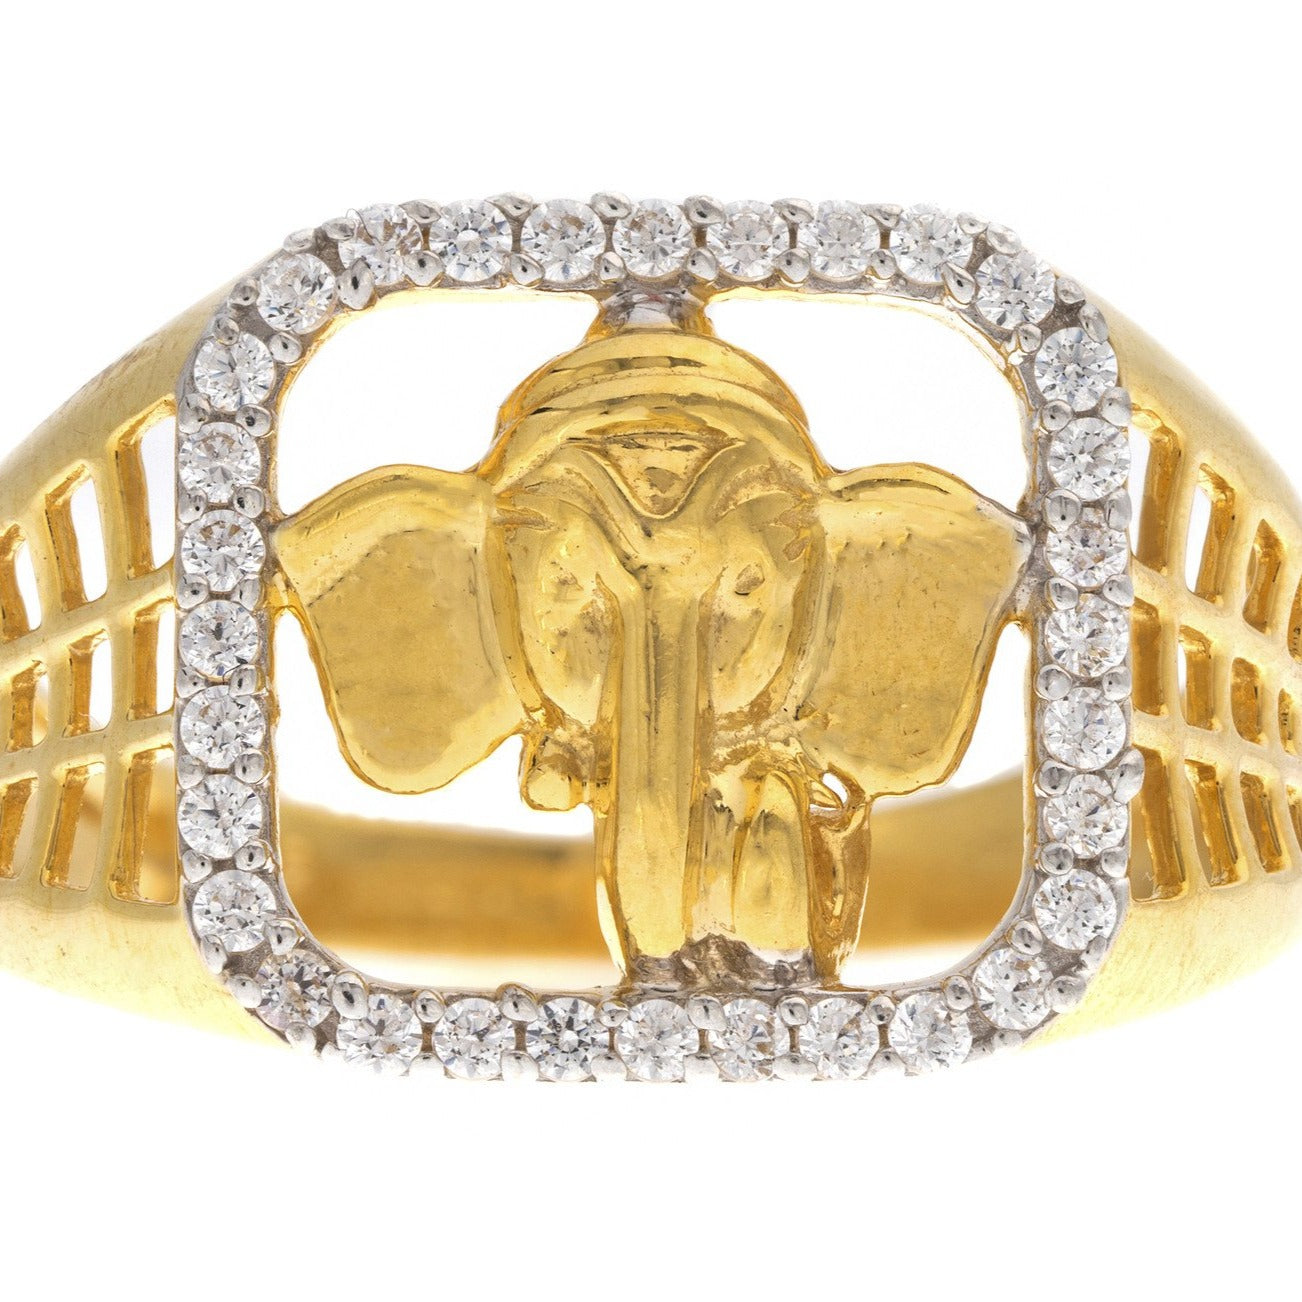 22ct Yellow Gold Cubic Zirconia Men's Ganesh Ring, Minar Jewellers - 3